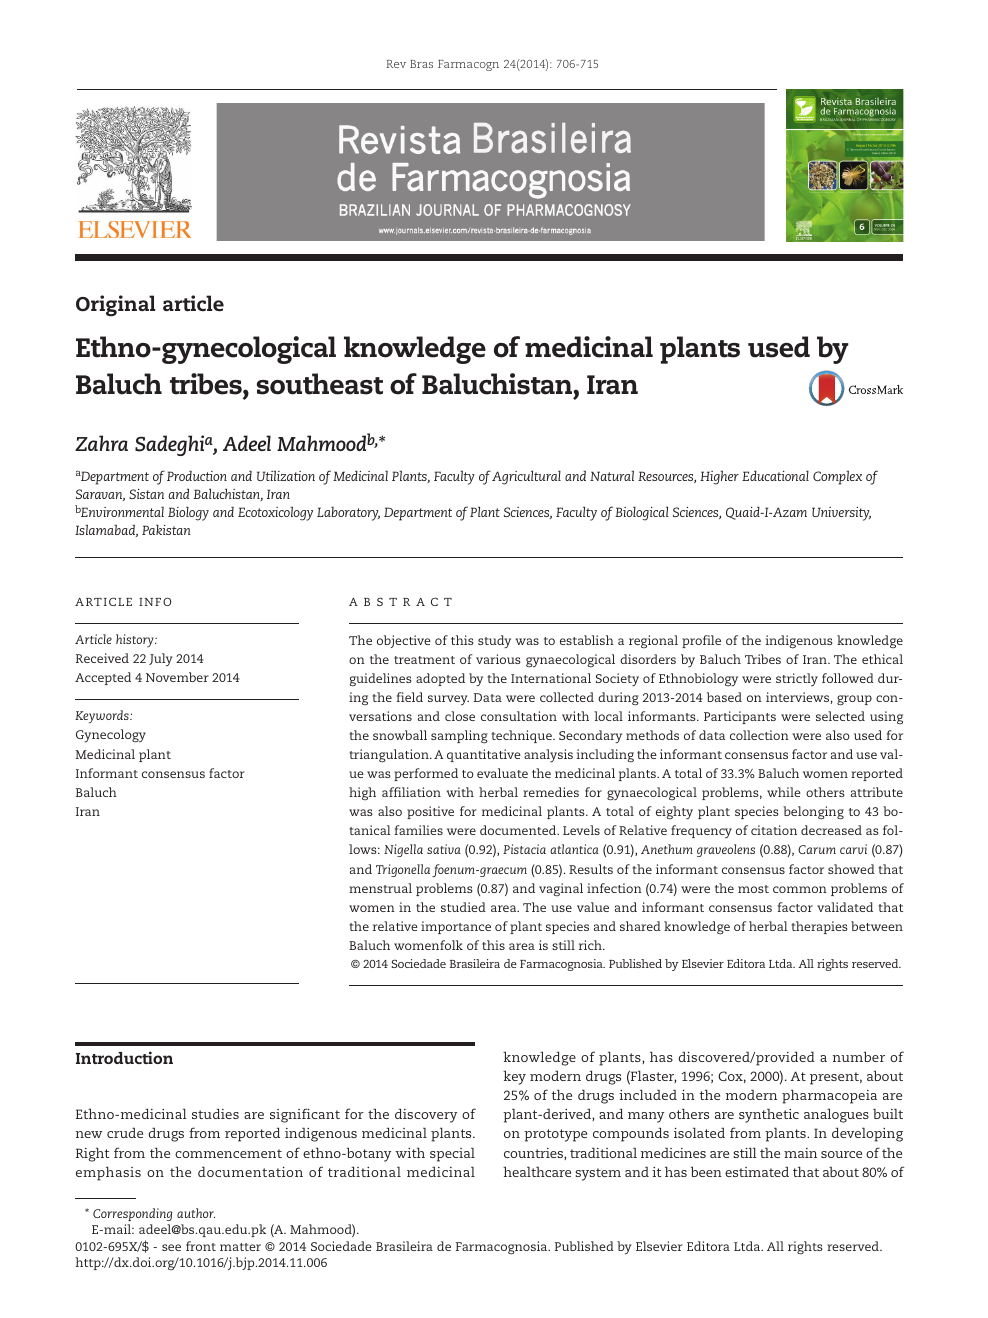 Ethno-gynecological knowledge of medicinal plants used by Baluch